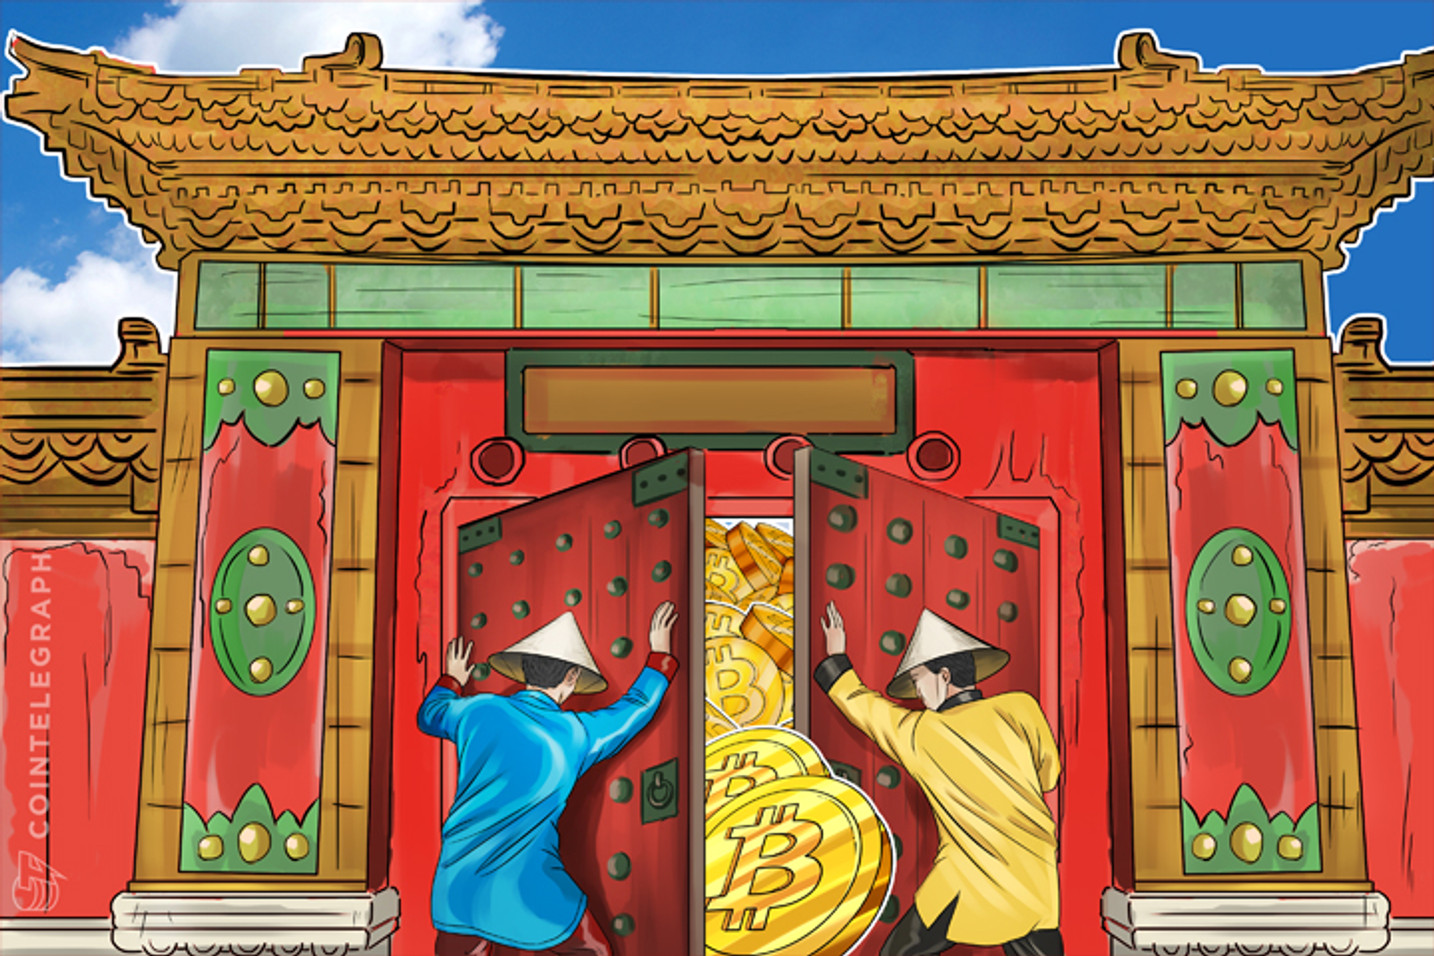 With BTCChina Ready to Stop Withdrawals, China Bitcoin Gates are Closing